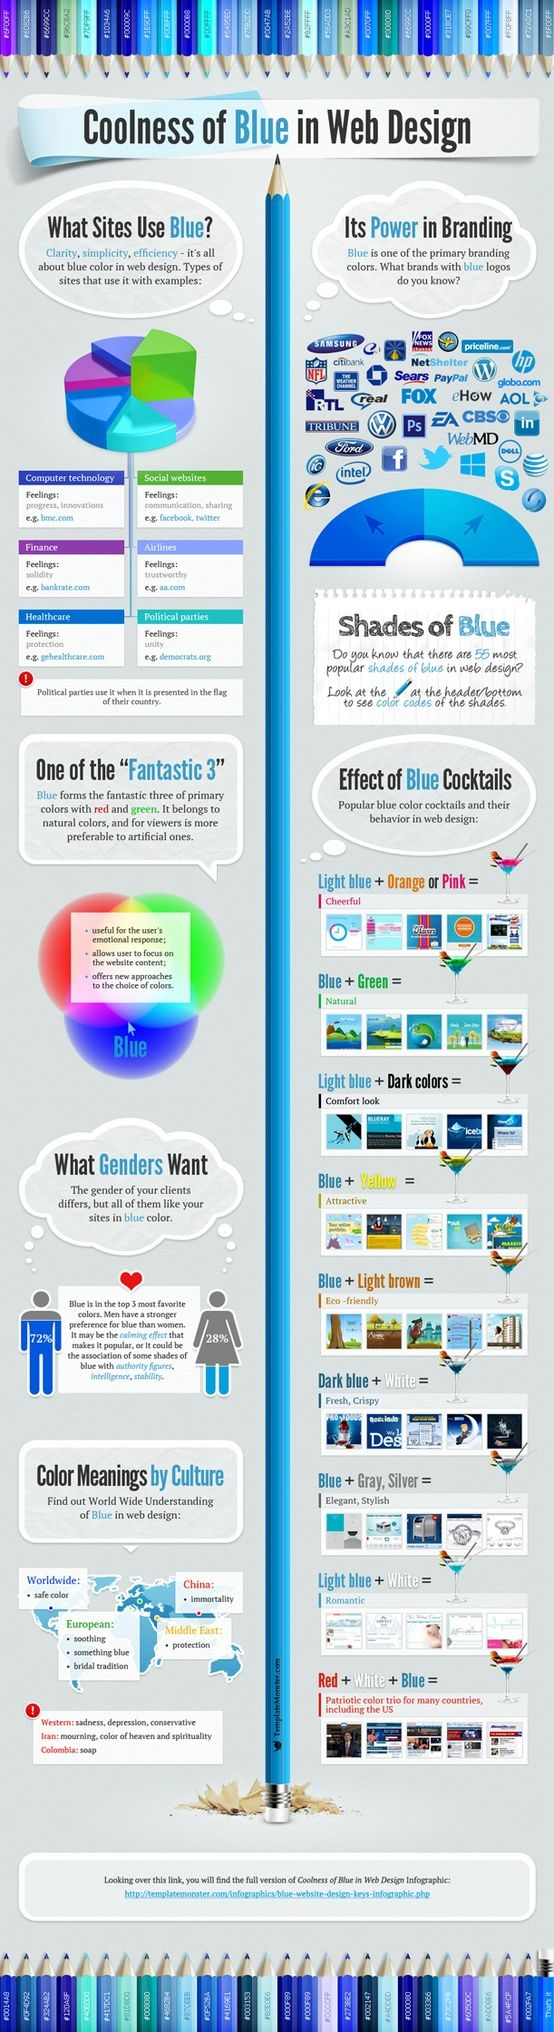 Coolness of blue in Web Desing. #Internet #infografia #infographic #design